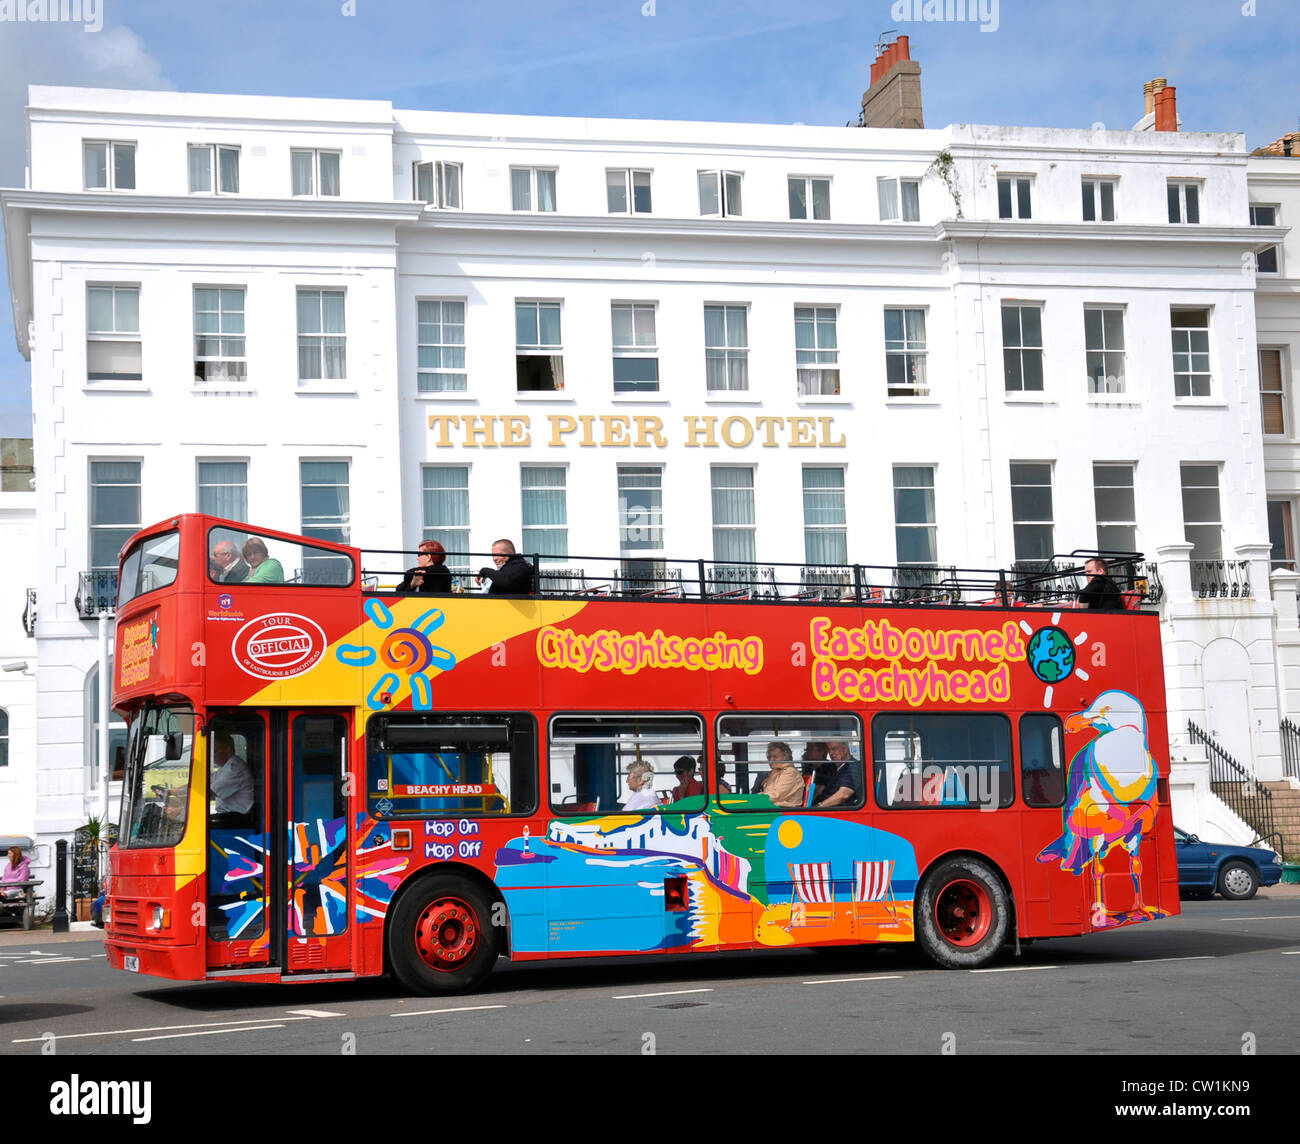 Eastbourne. Sightseeing bus in front of The Pier Hotel, in Eastbourne, East Sussex, England, UK. - Stock Image